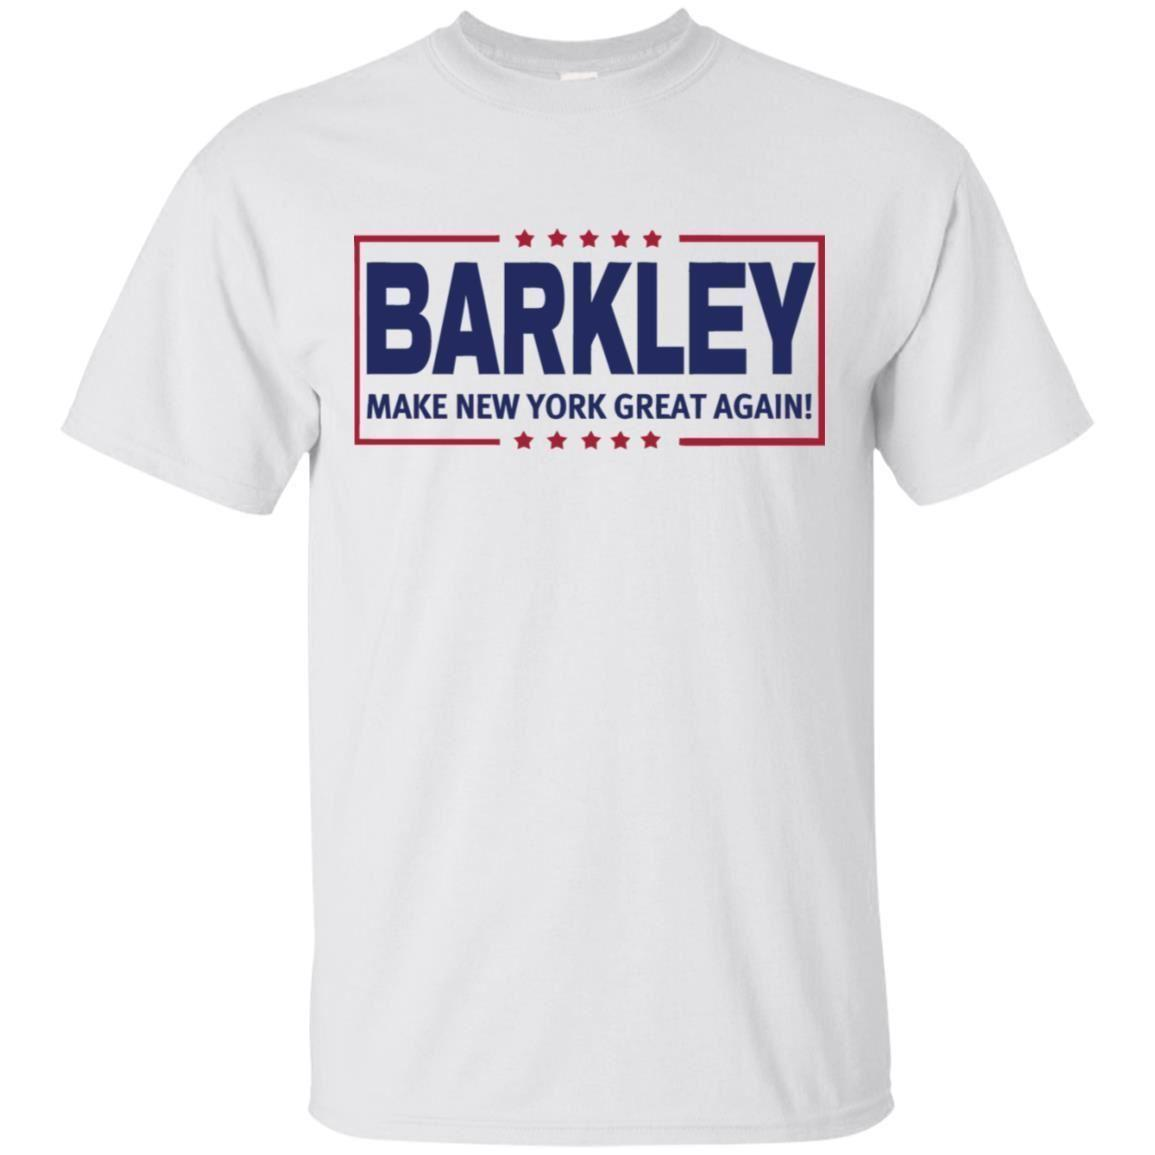 best service 12ecf 283fb Saquon Barkley T-shirt Barkley Make New York Great Agian Men's Tee S-5XL  Fashion Casual Cotton Short-Sleeve Funny Casual O-Neck